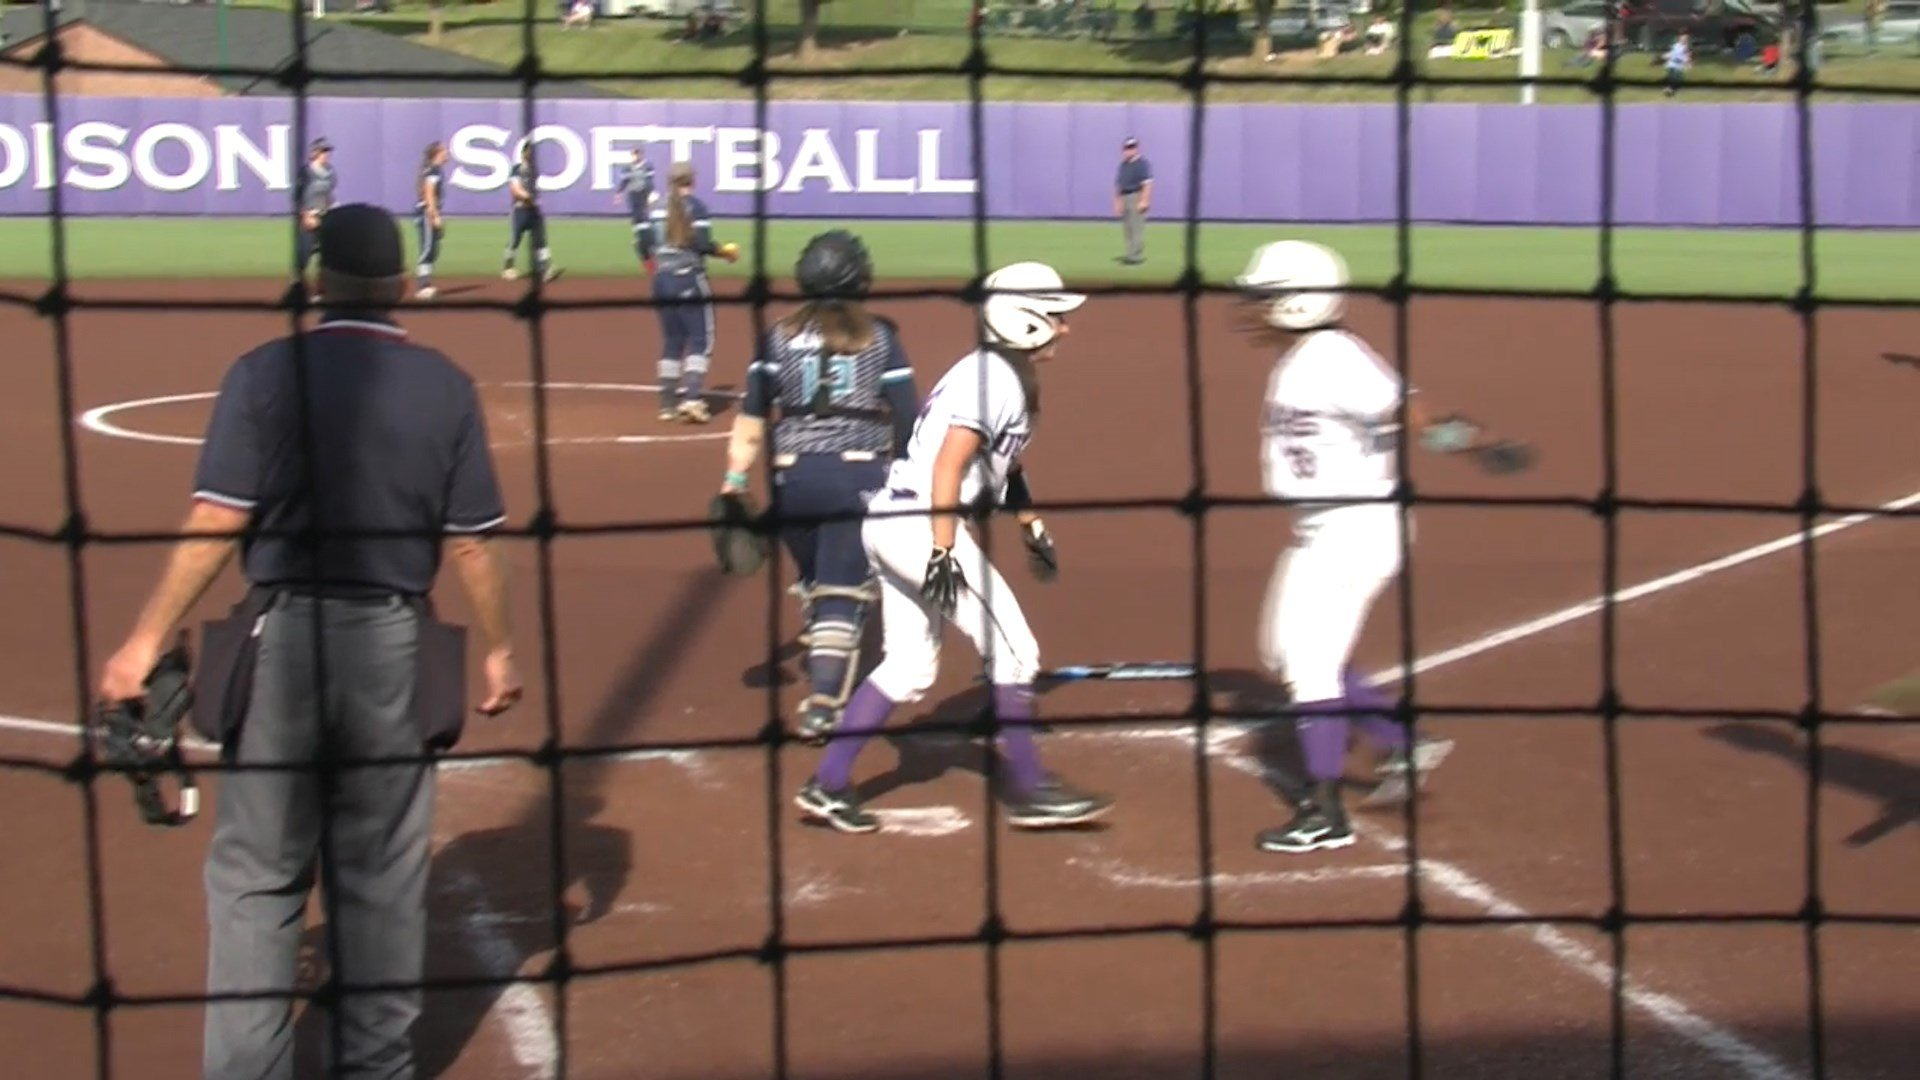 Senior Niki Prince scored as part of a six run first inning